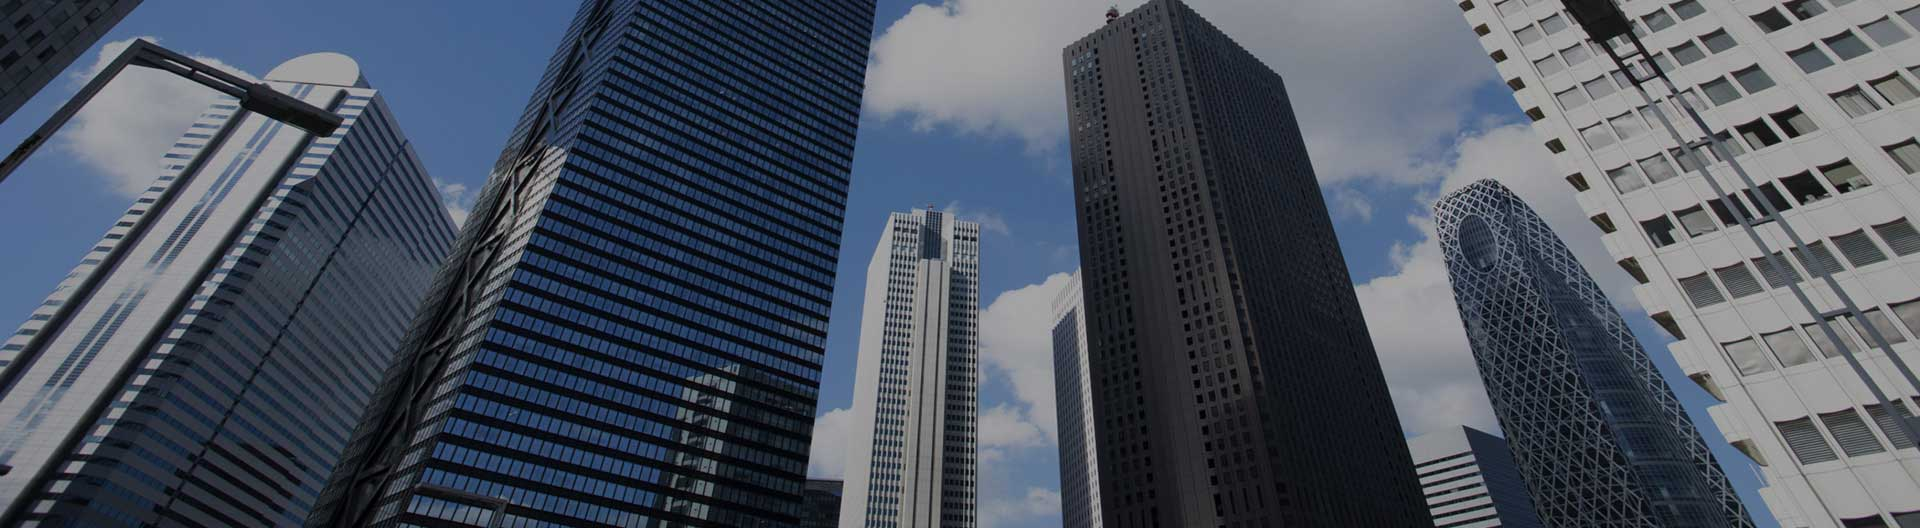 city picture looking upwards at skyscraper buildings